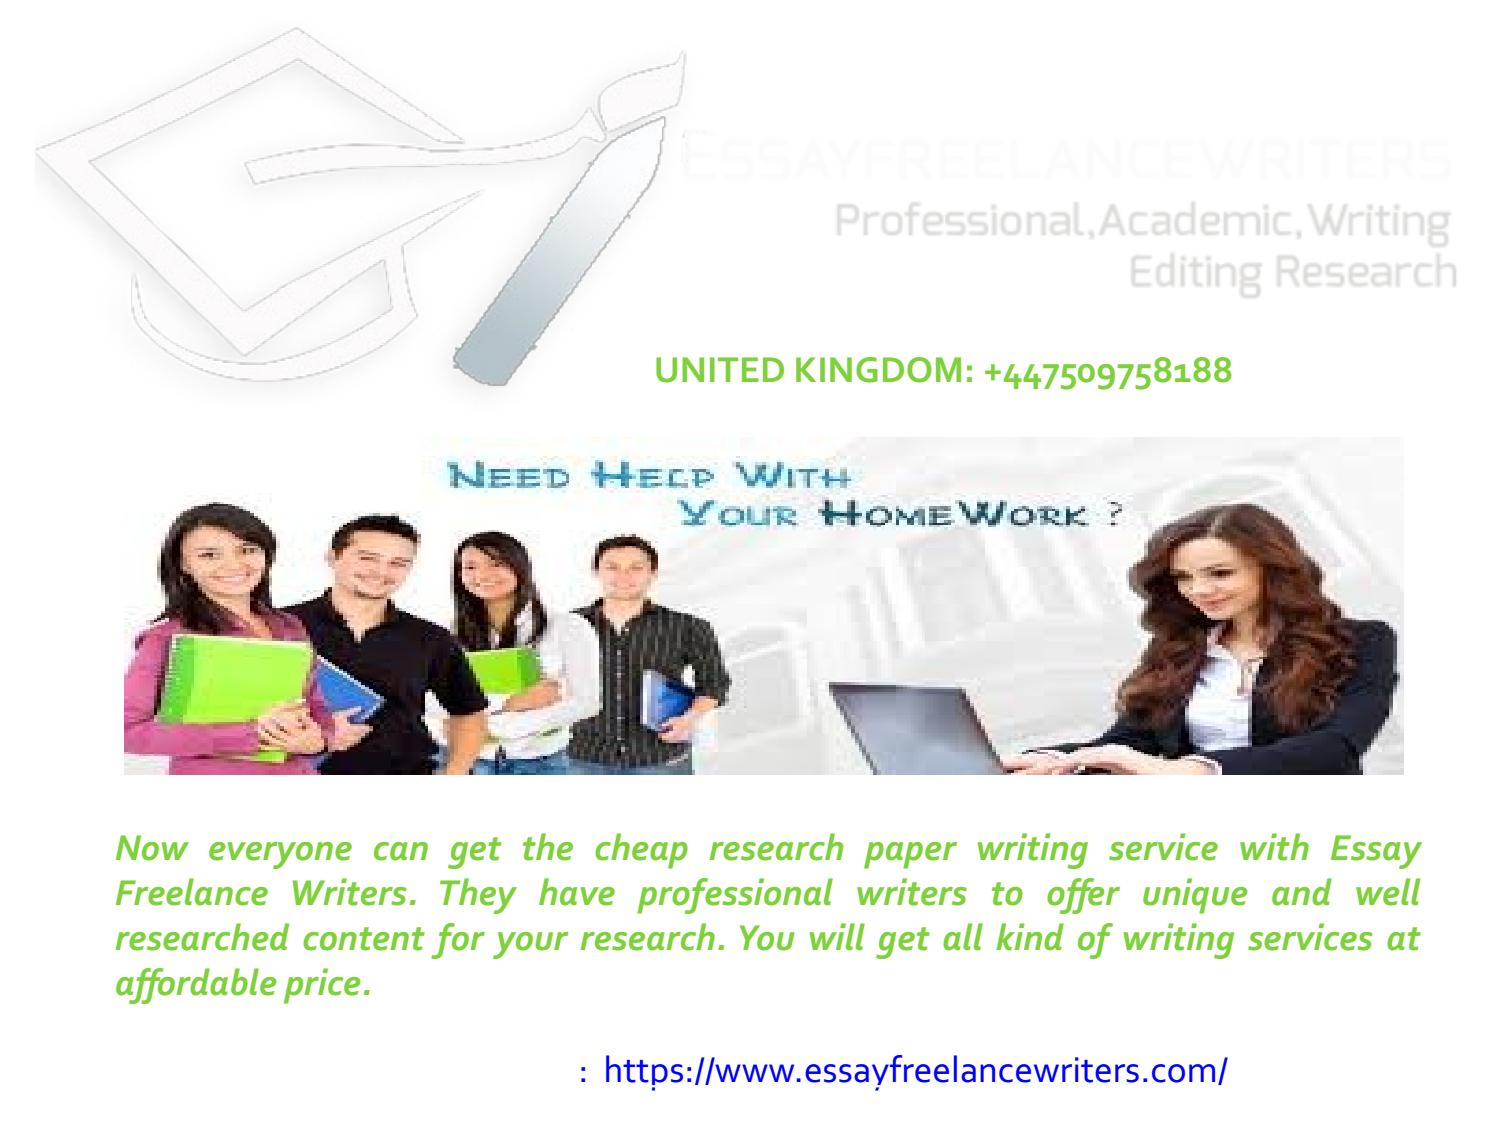 Affordable research paper writing